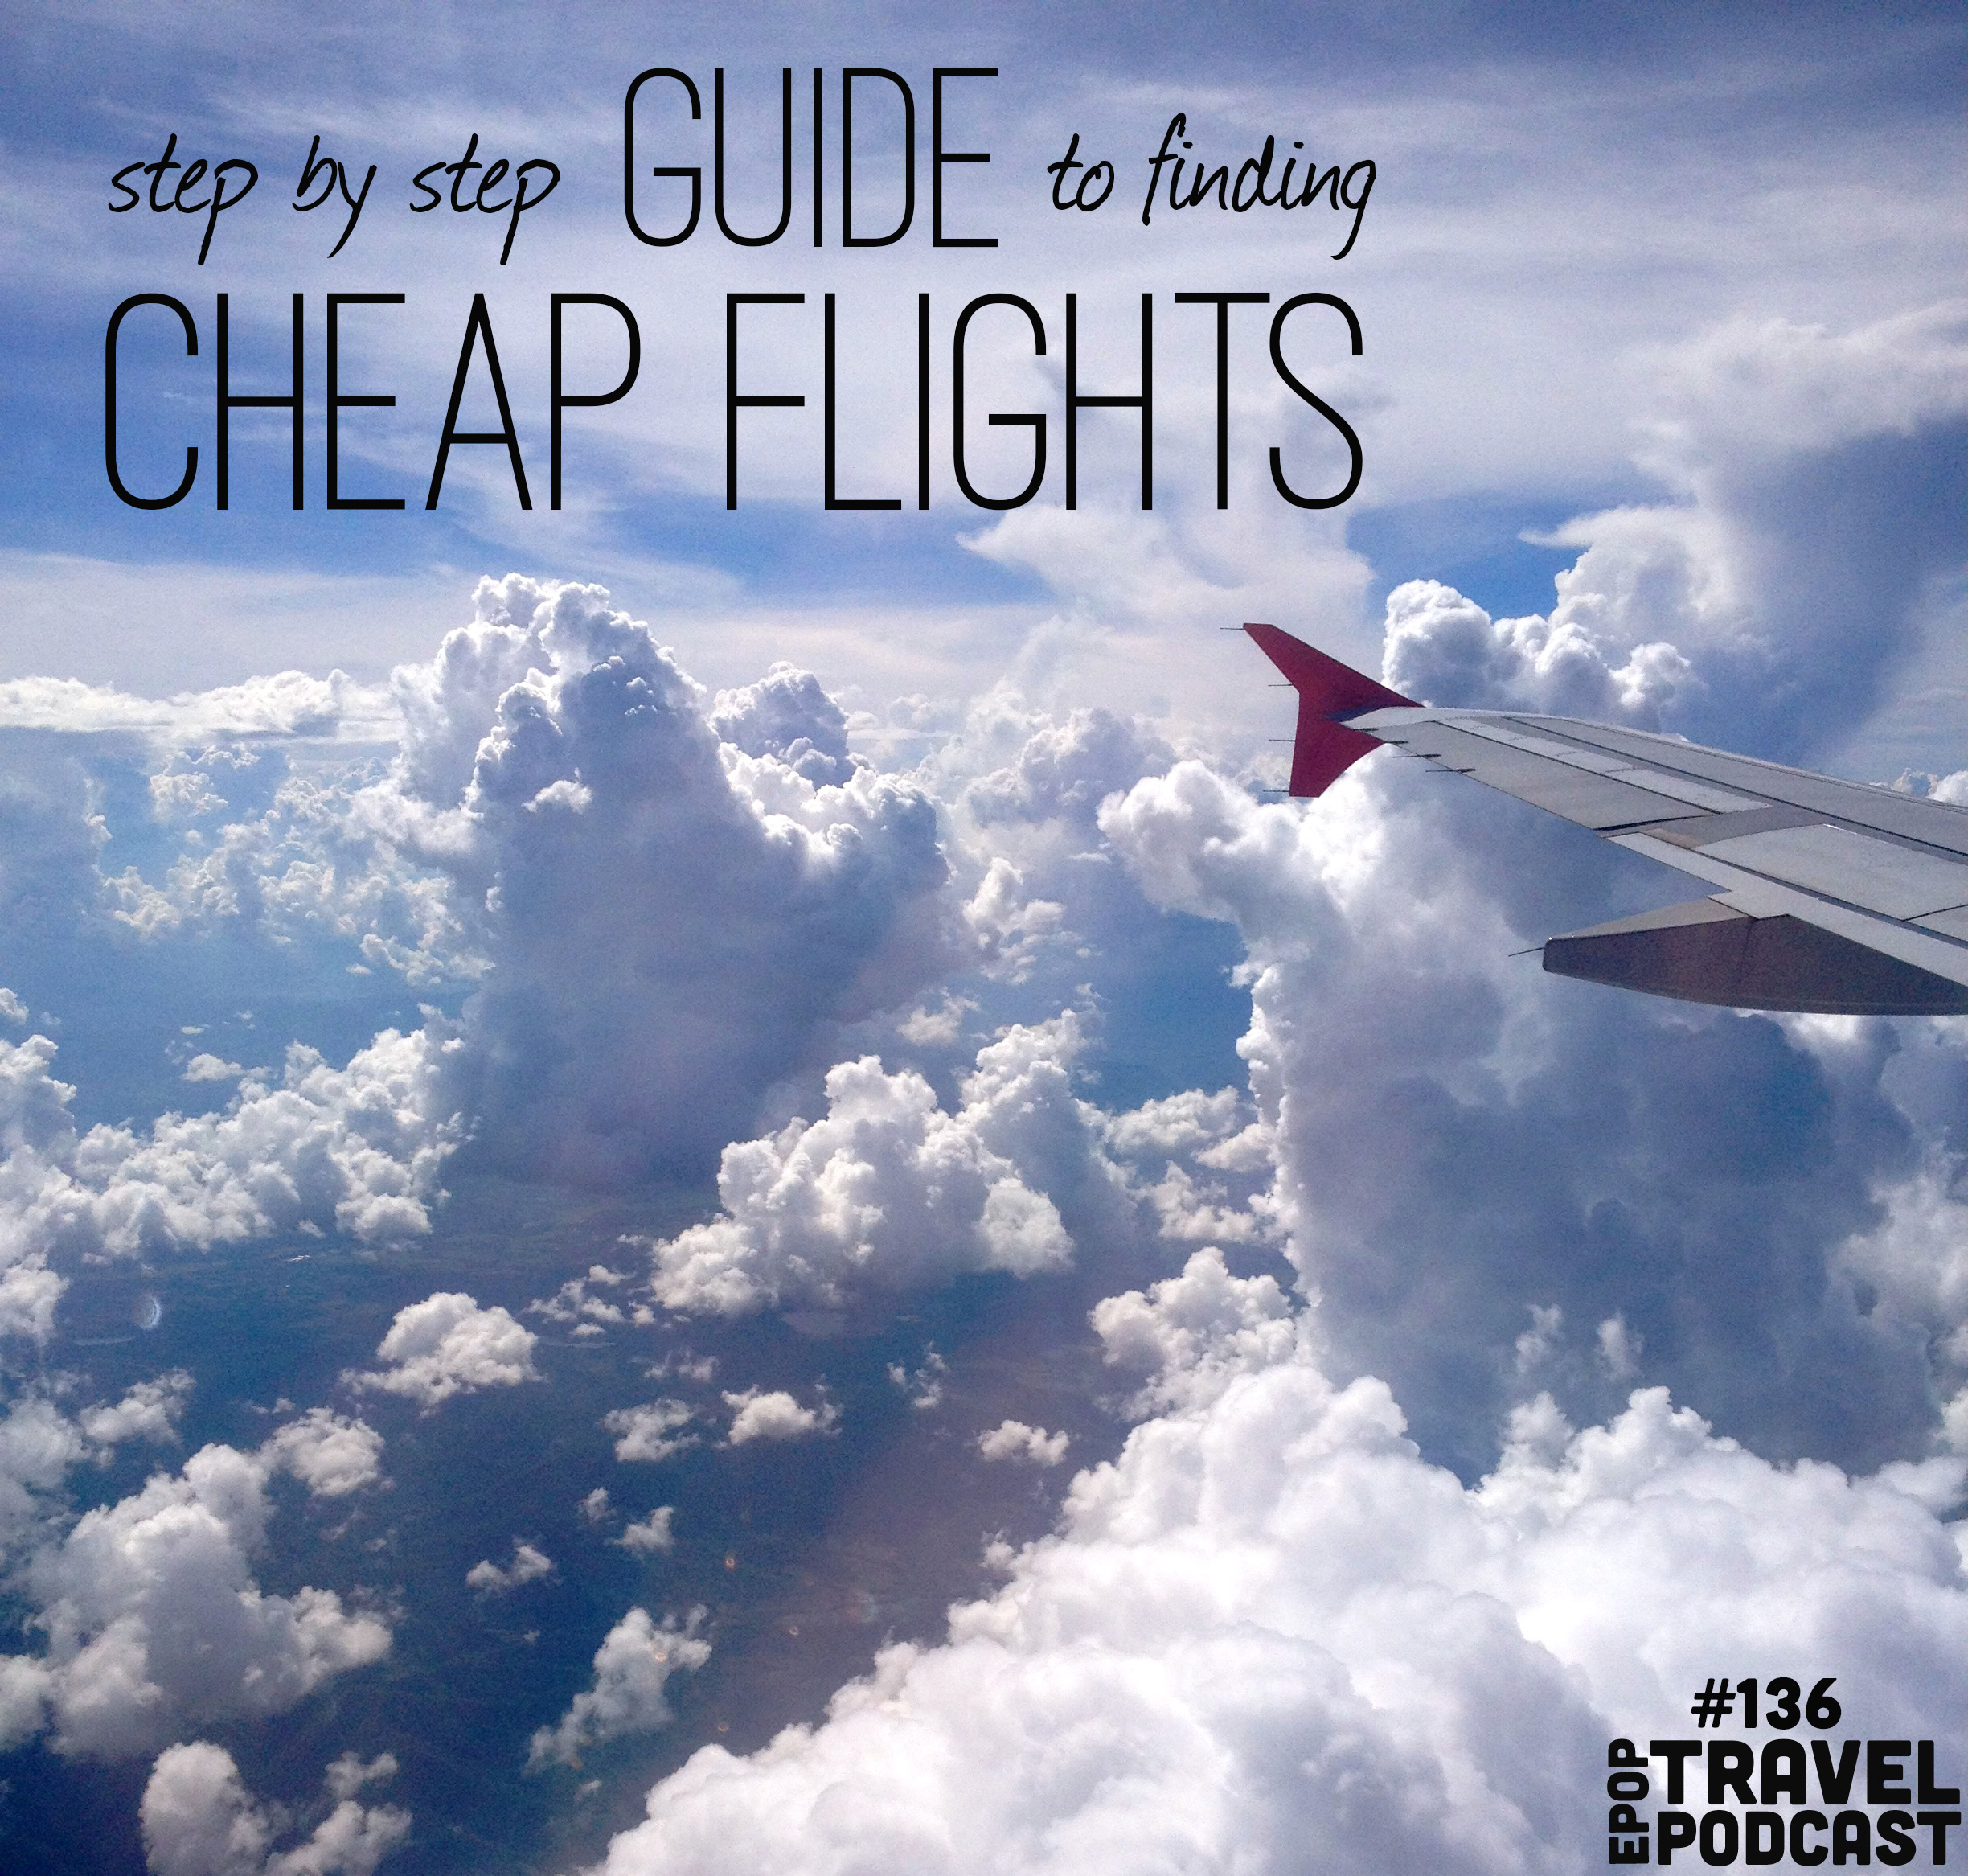 A Step by Step Guide to Finding Cheap Flights